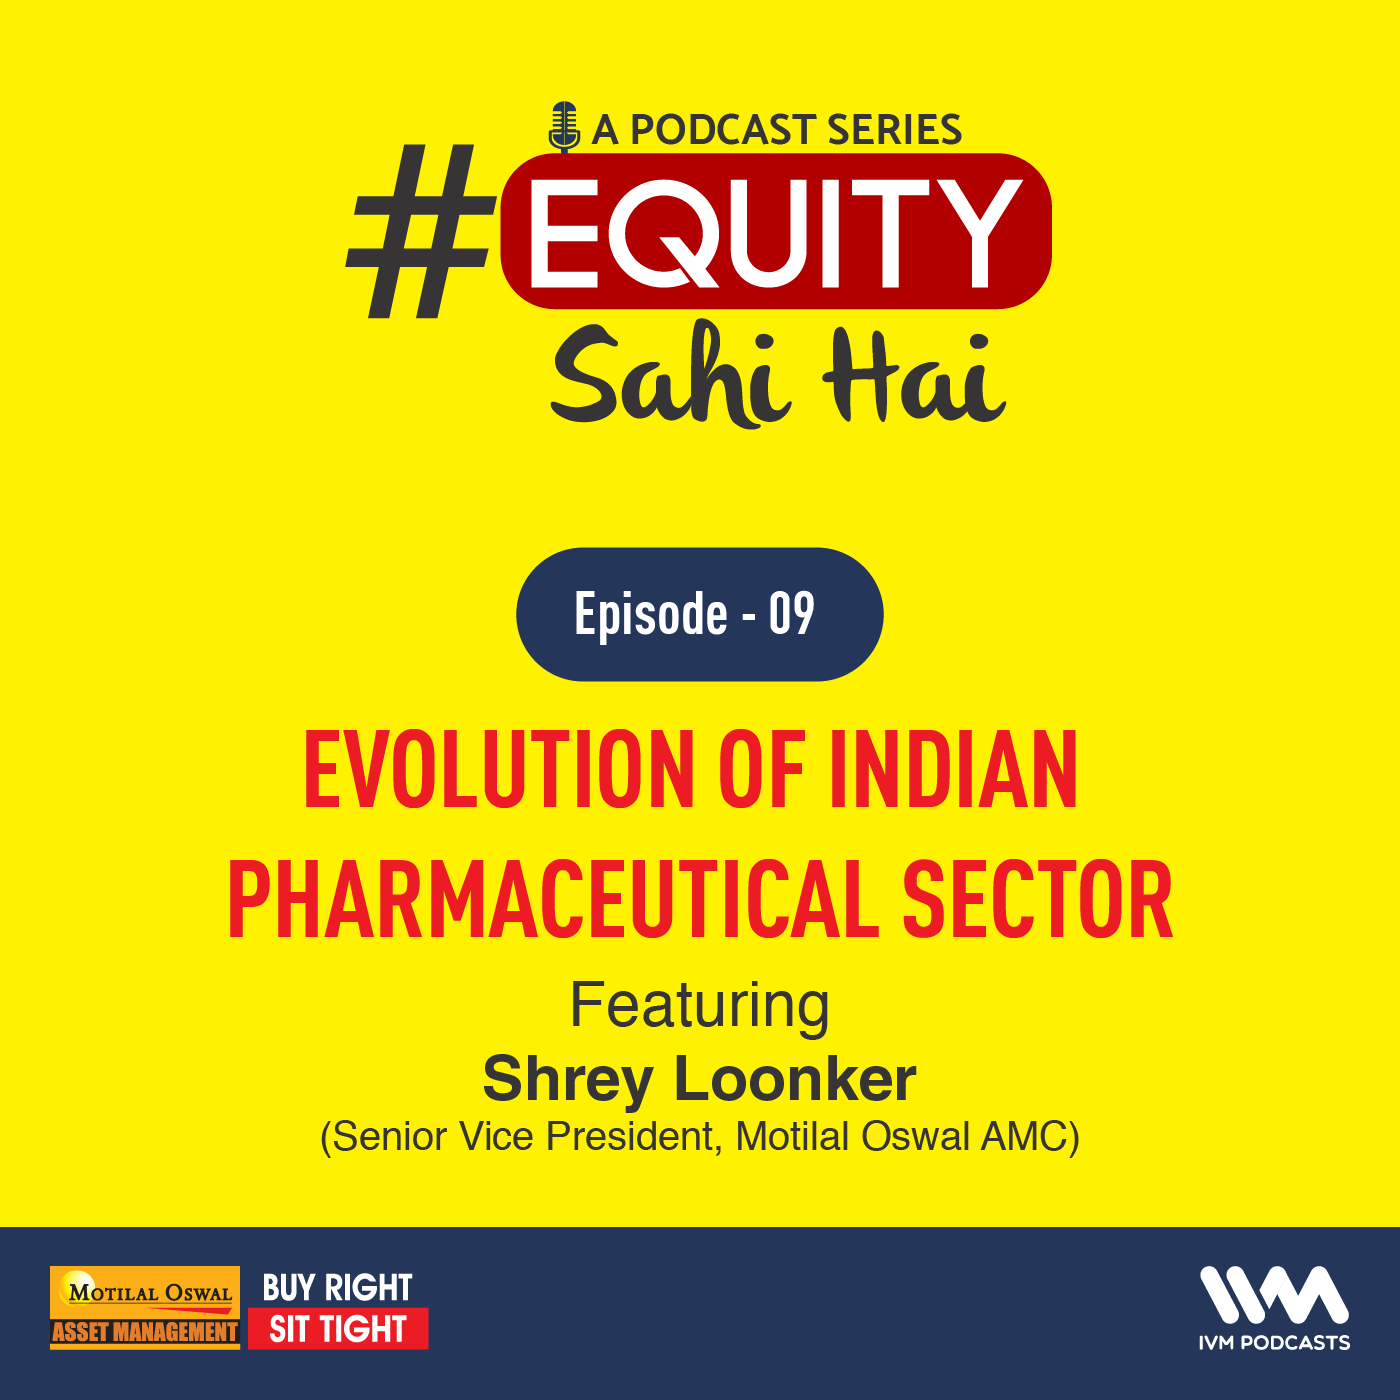 Ep. 09: Evolution of Indian Pharmaceutical Sector